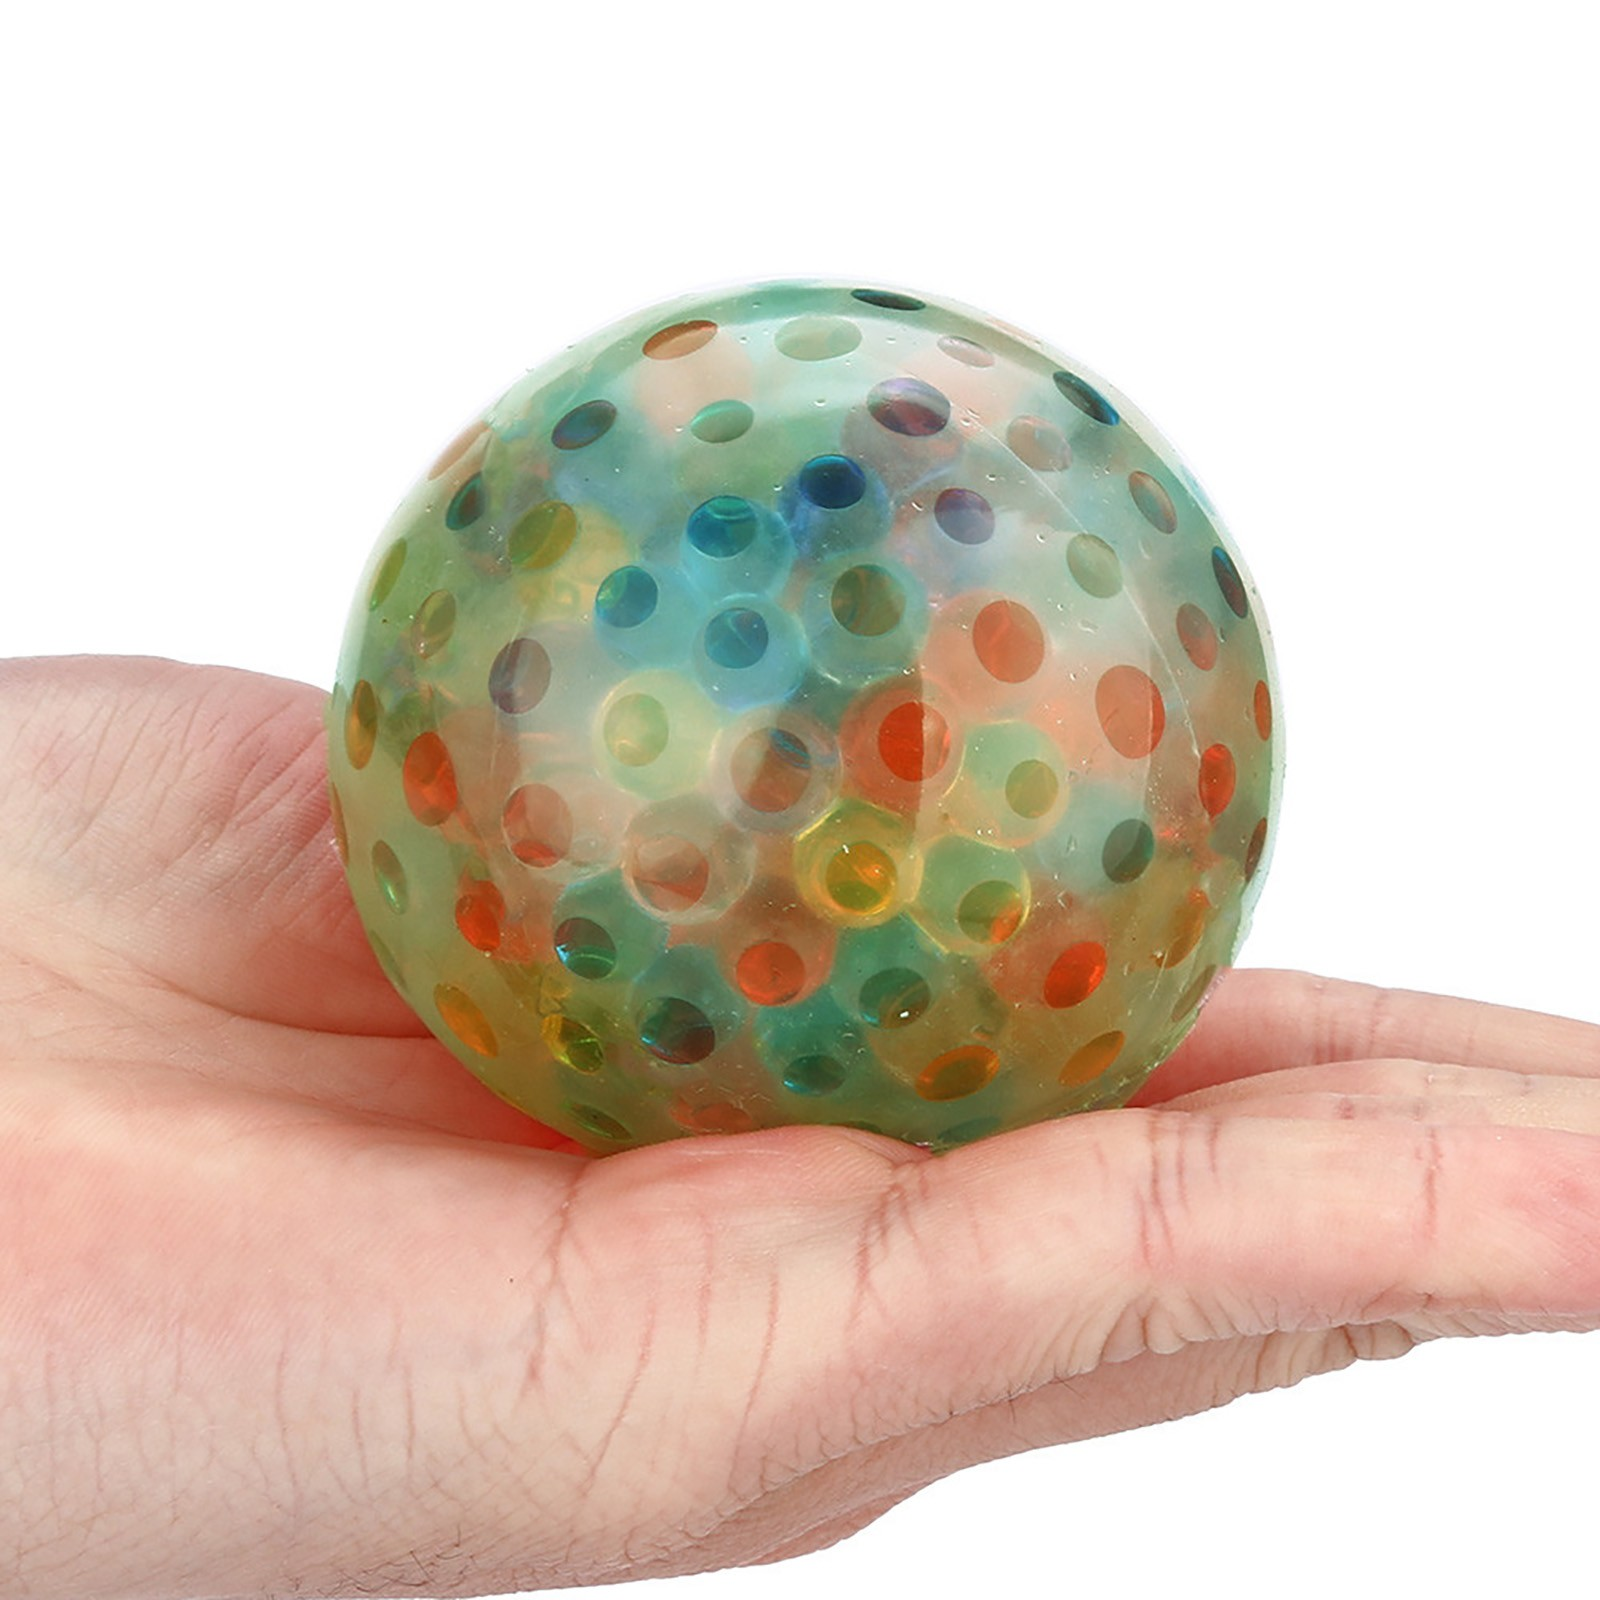 Squishy Toy Stress-Ball Squeezable-Stress Bead Spongy Hot-Sale